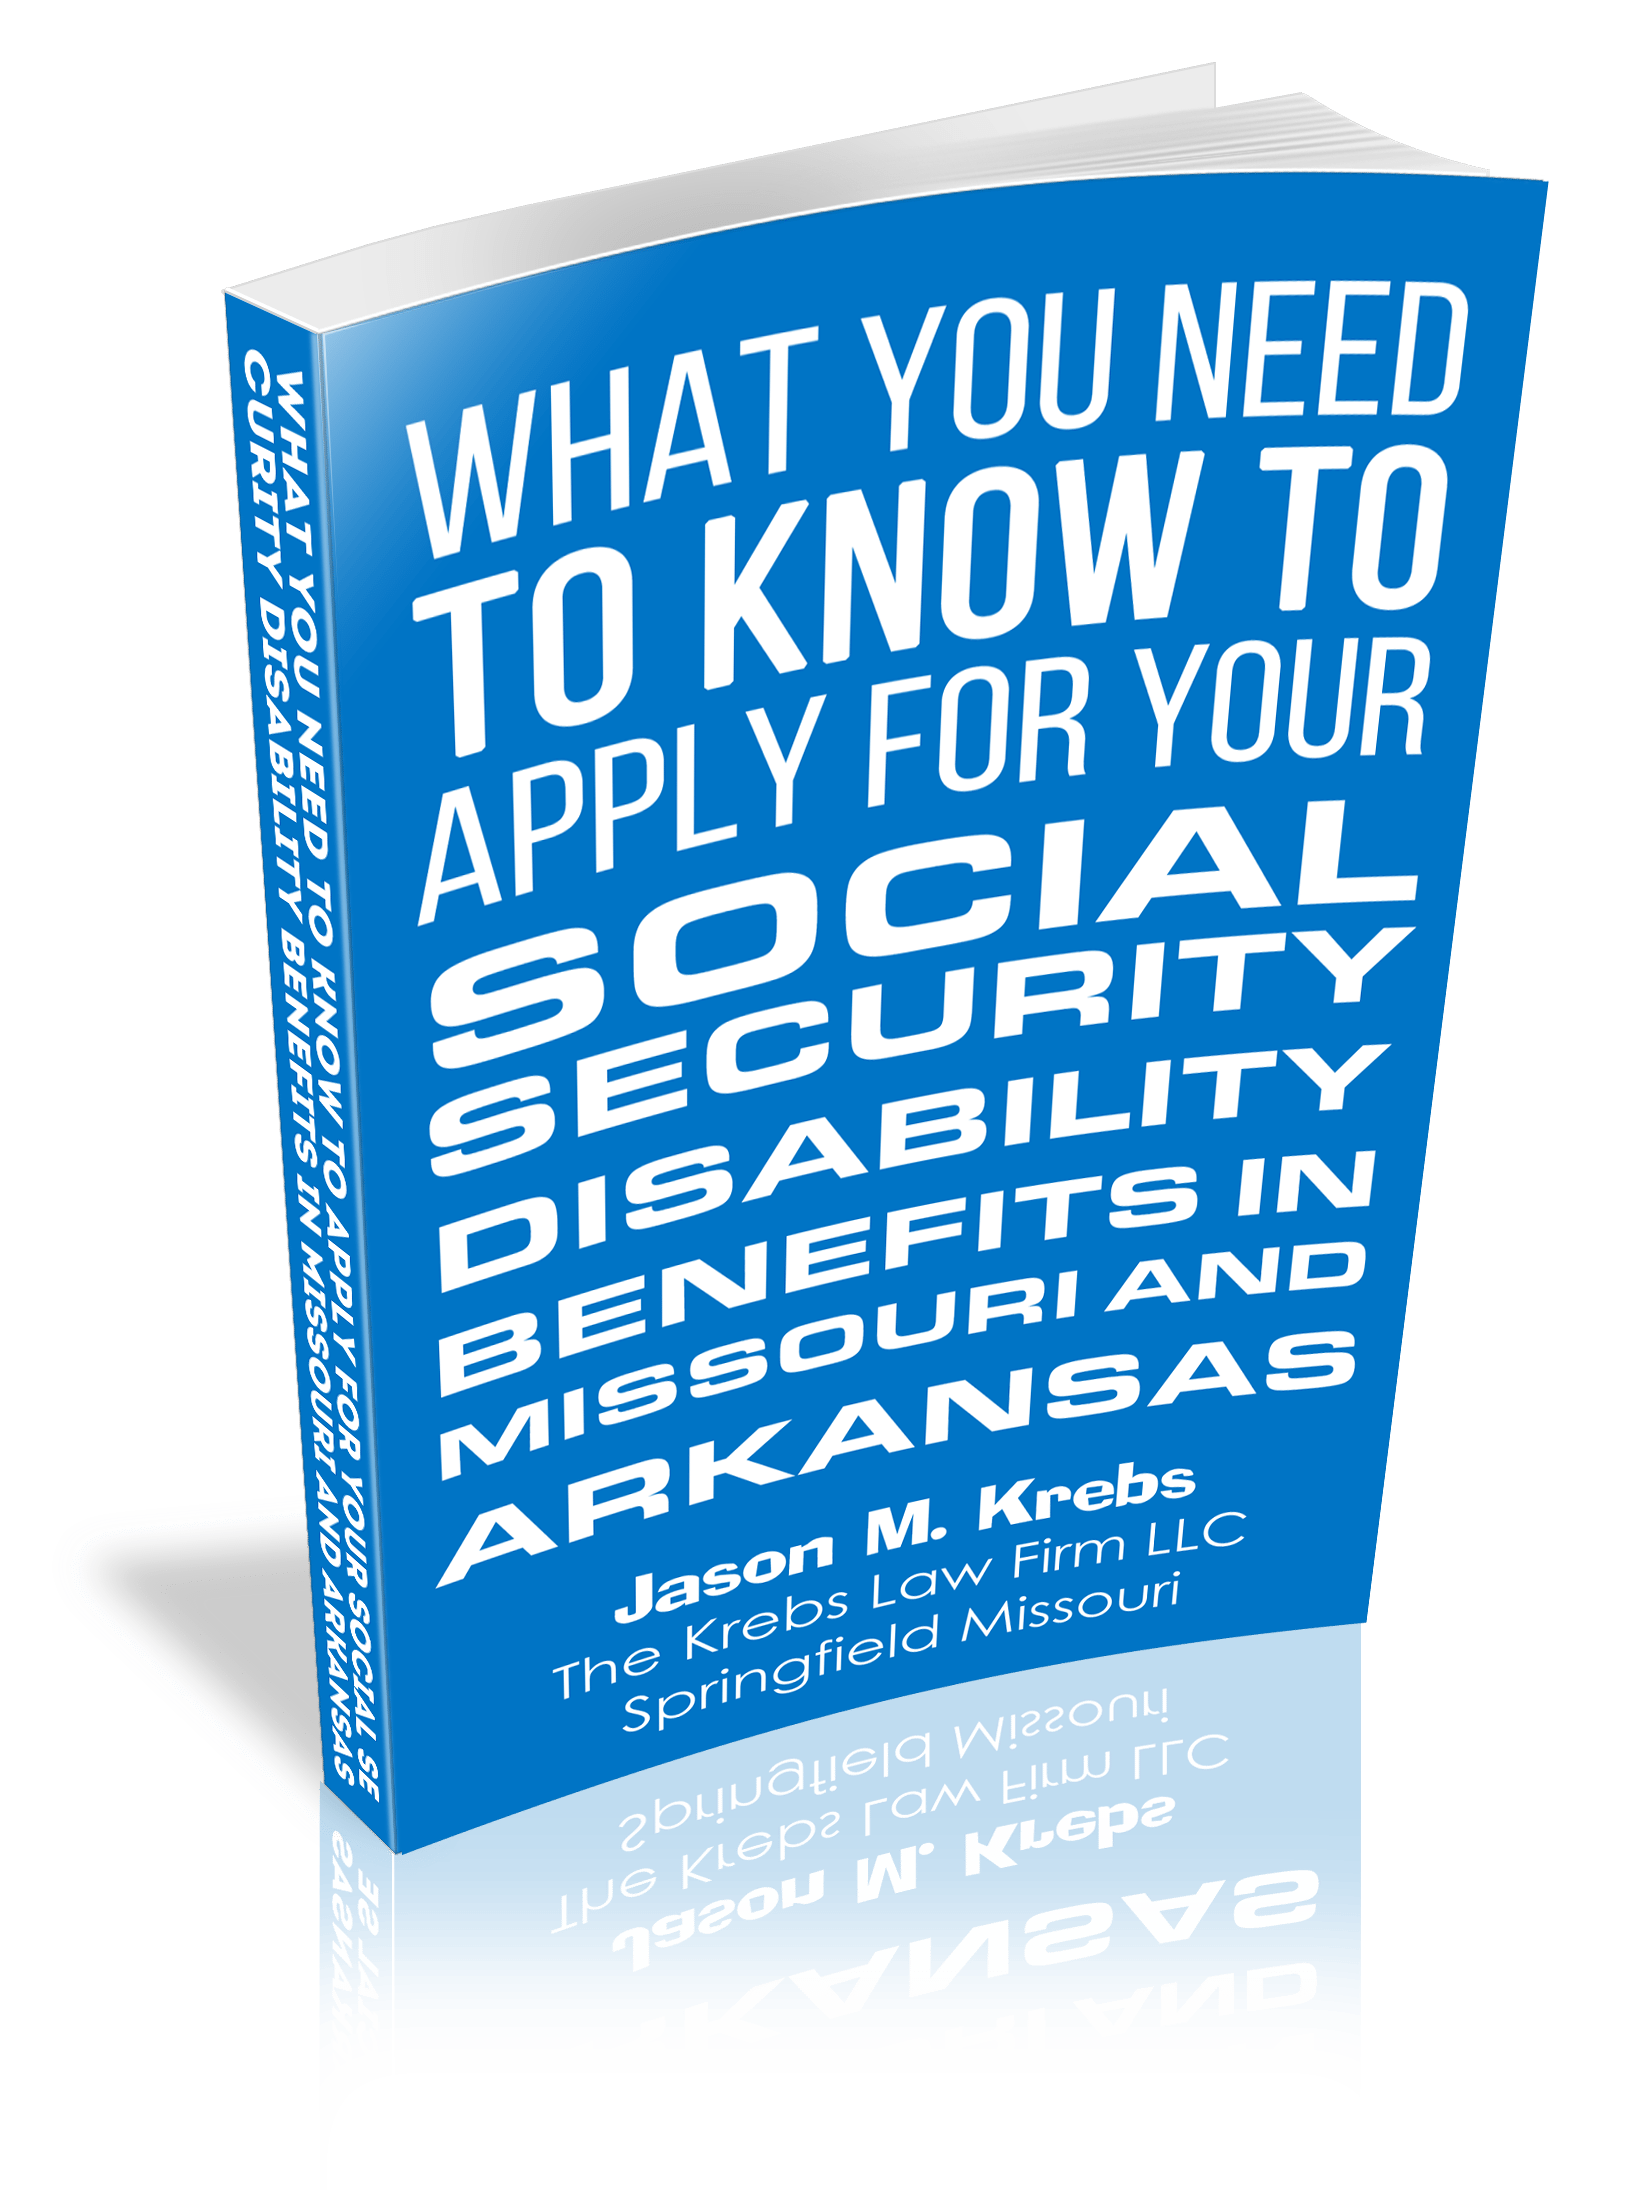 What You Need To Know To Apply For Social Security Benefits - Krebs Law Firm